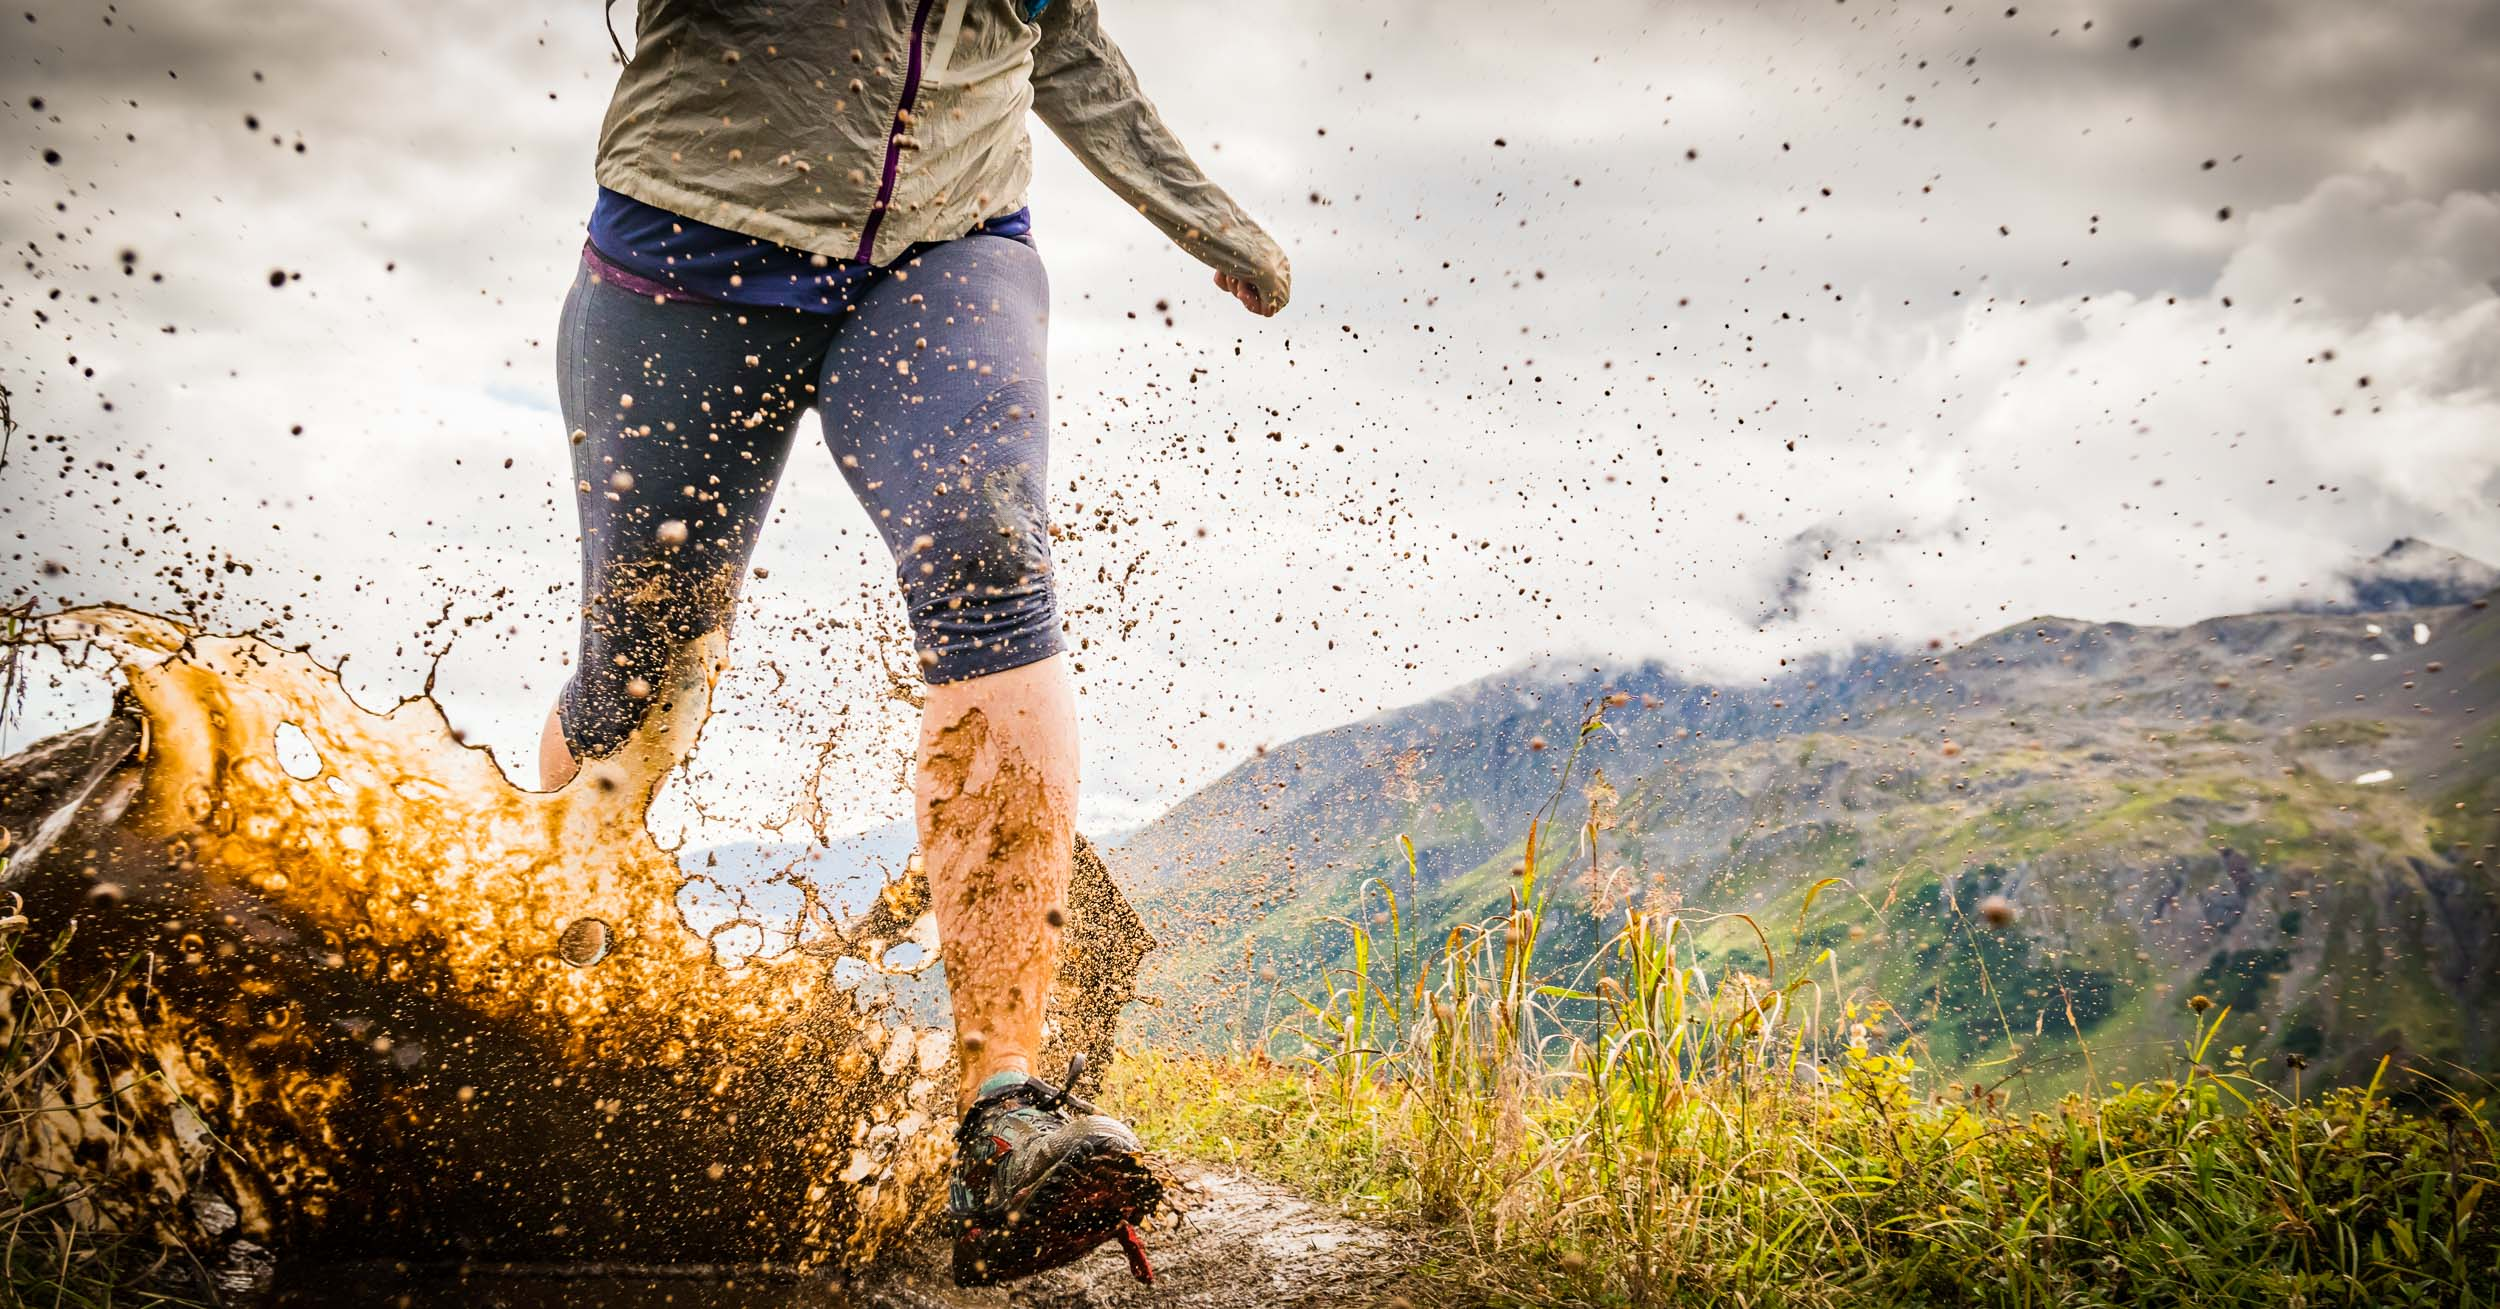 Alaska Photographer Michael DeYoung Trail Runner Splash